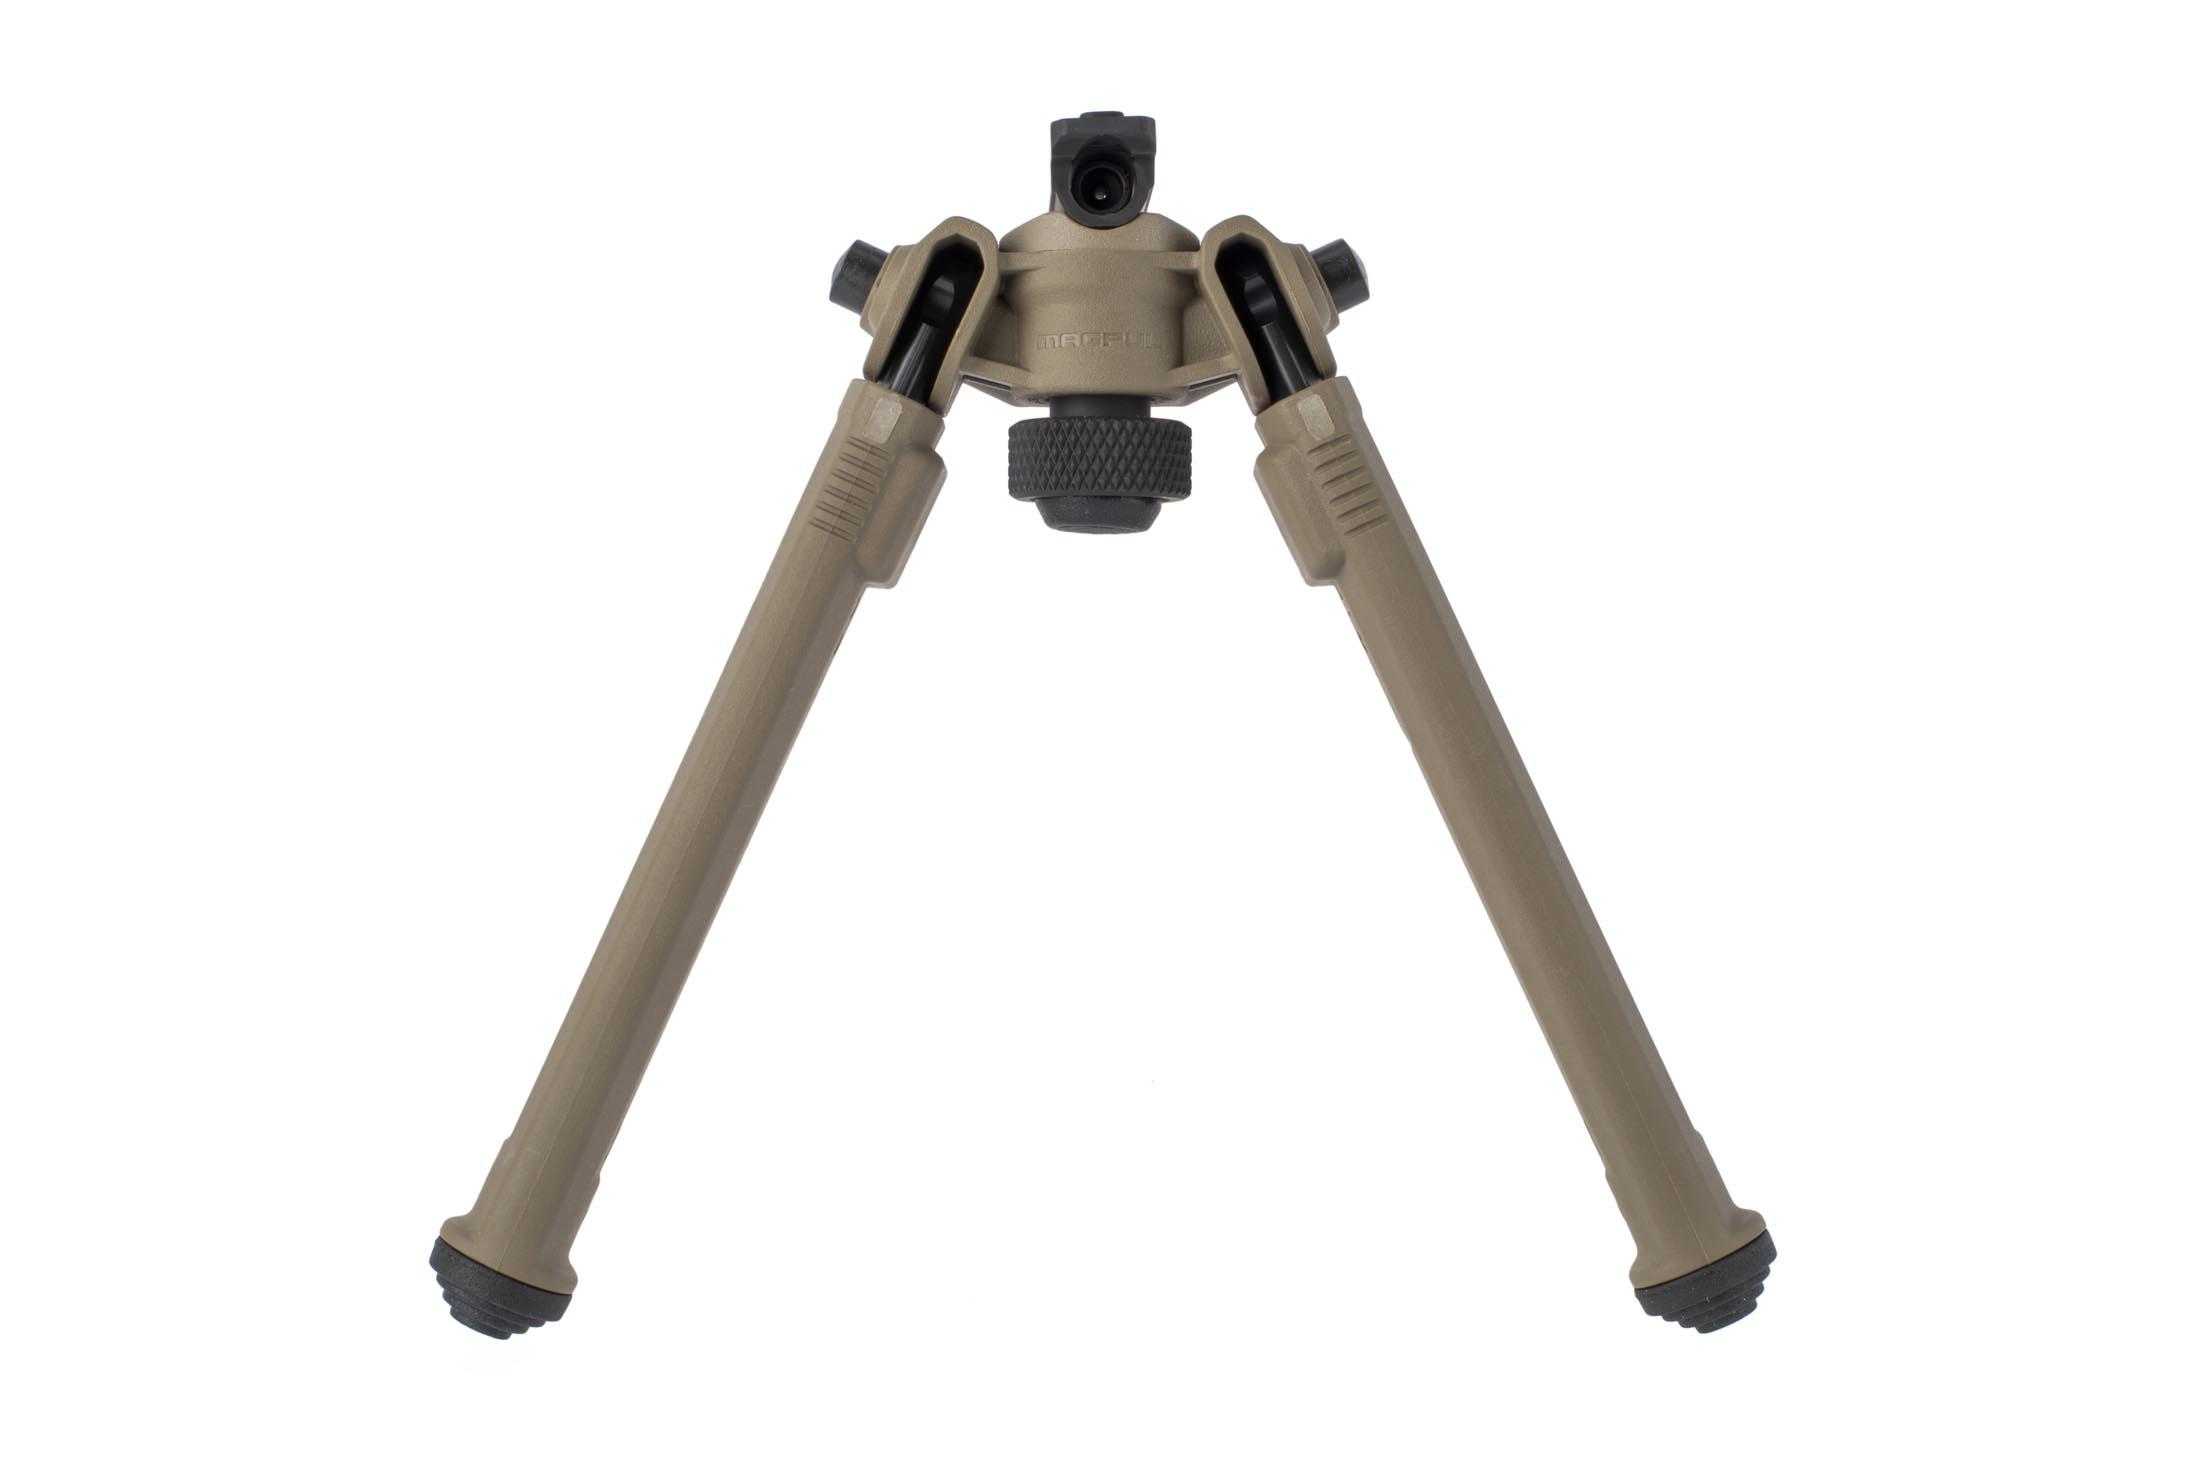 Magpul black M-LOK bipods have adjustable pan and tilt with adjustable length legs with stepped polymer feet for stability